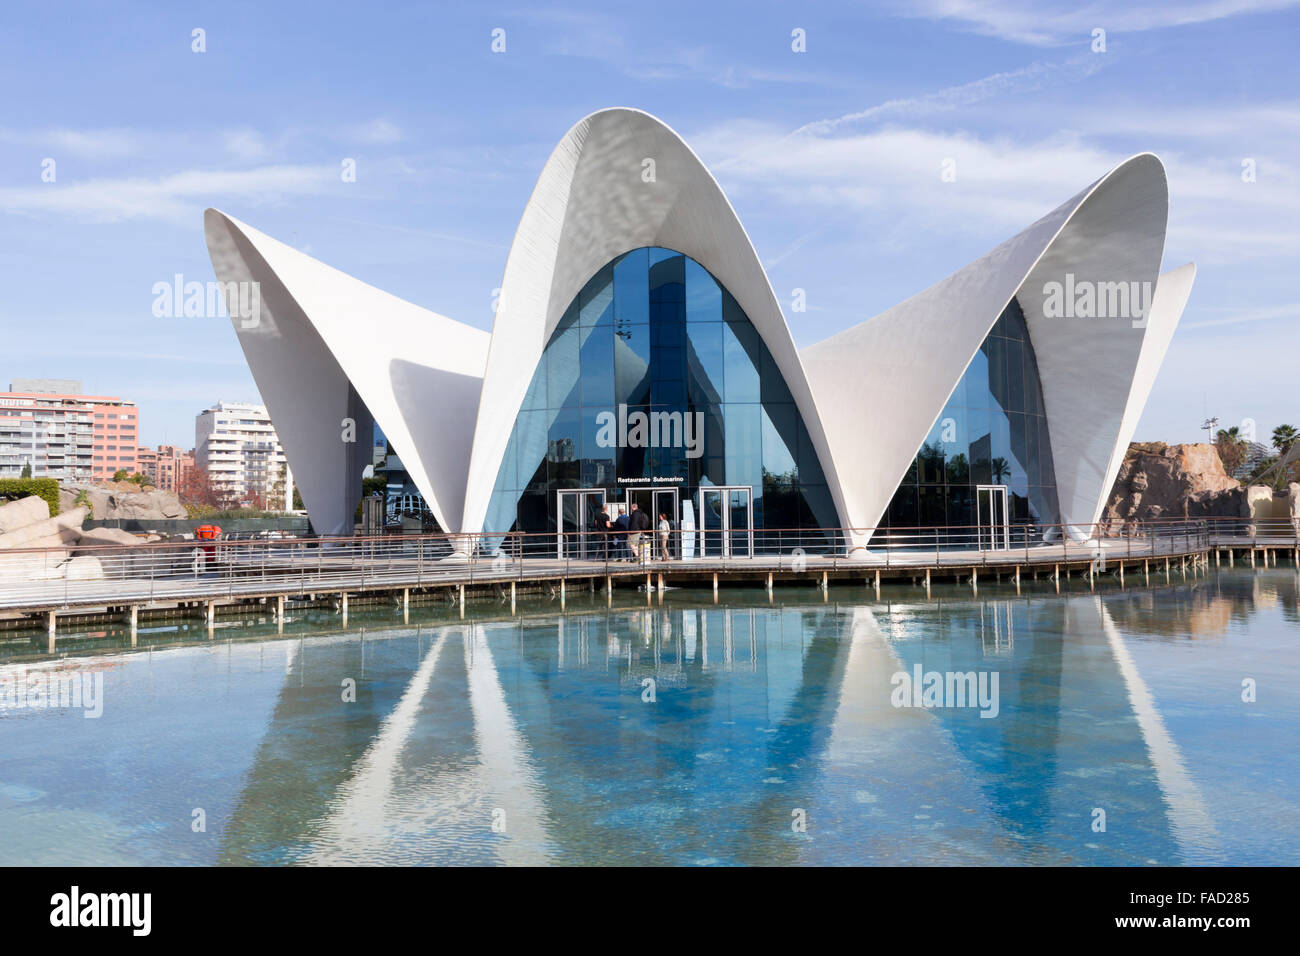 Valencia, Spain. The City of Arts and Sciences. L'Oceanogràfic. - Stock Image